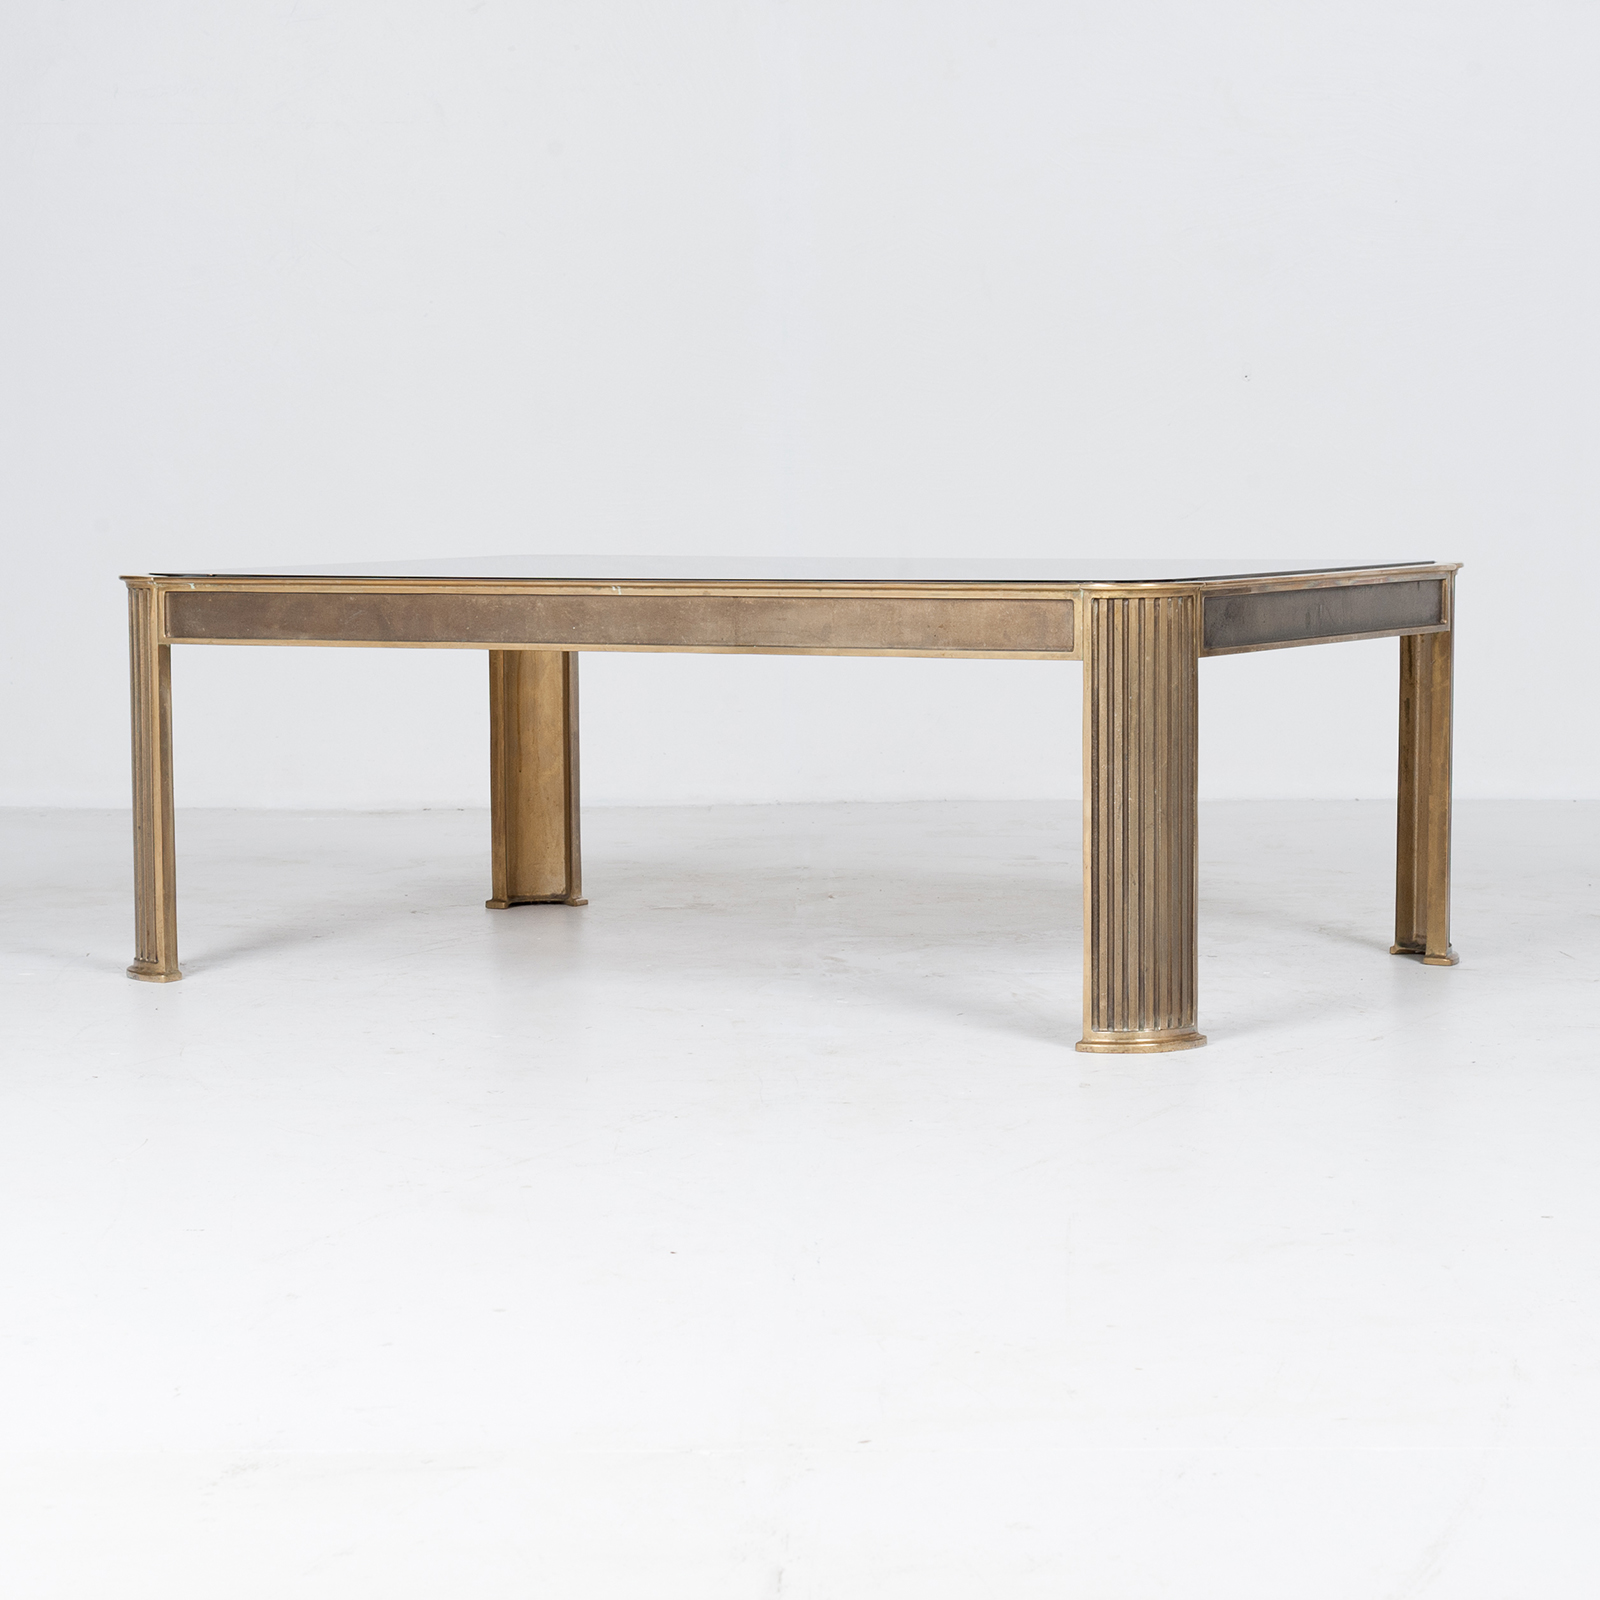 Rectangular Coffee Table With Solid Brass Frame By Peter Ghyczy, 1970s, The Netherlands 5